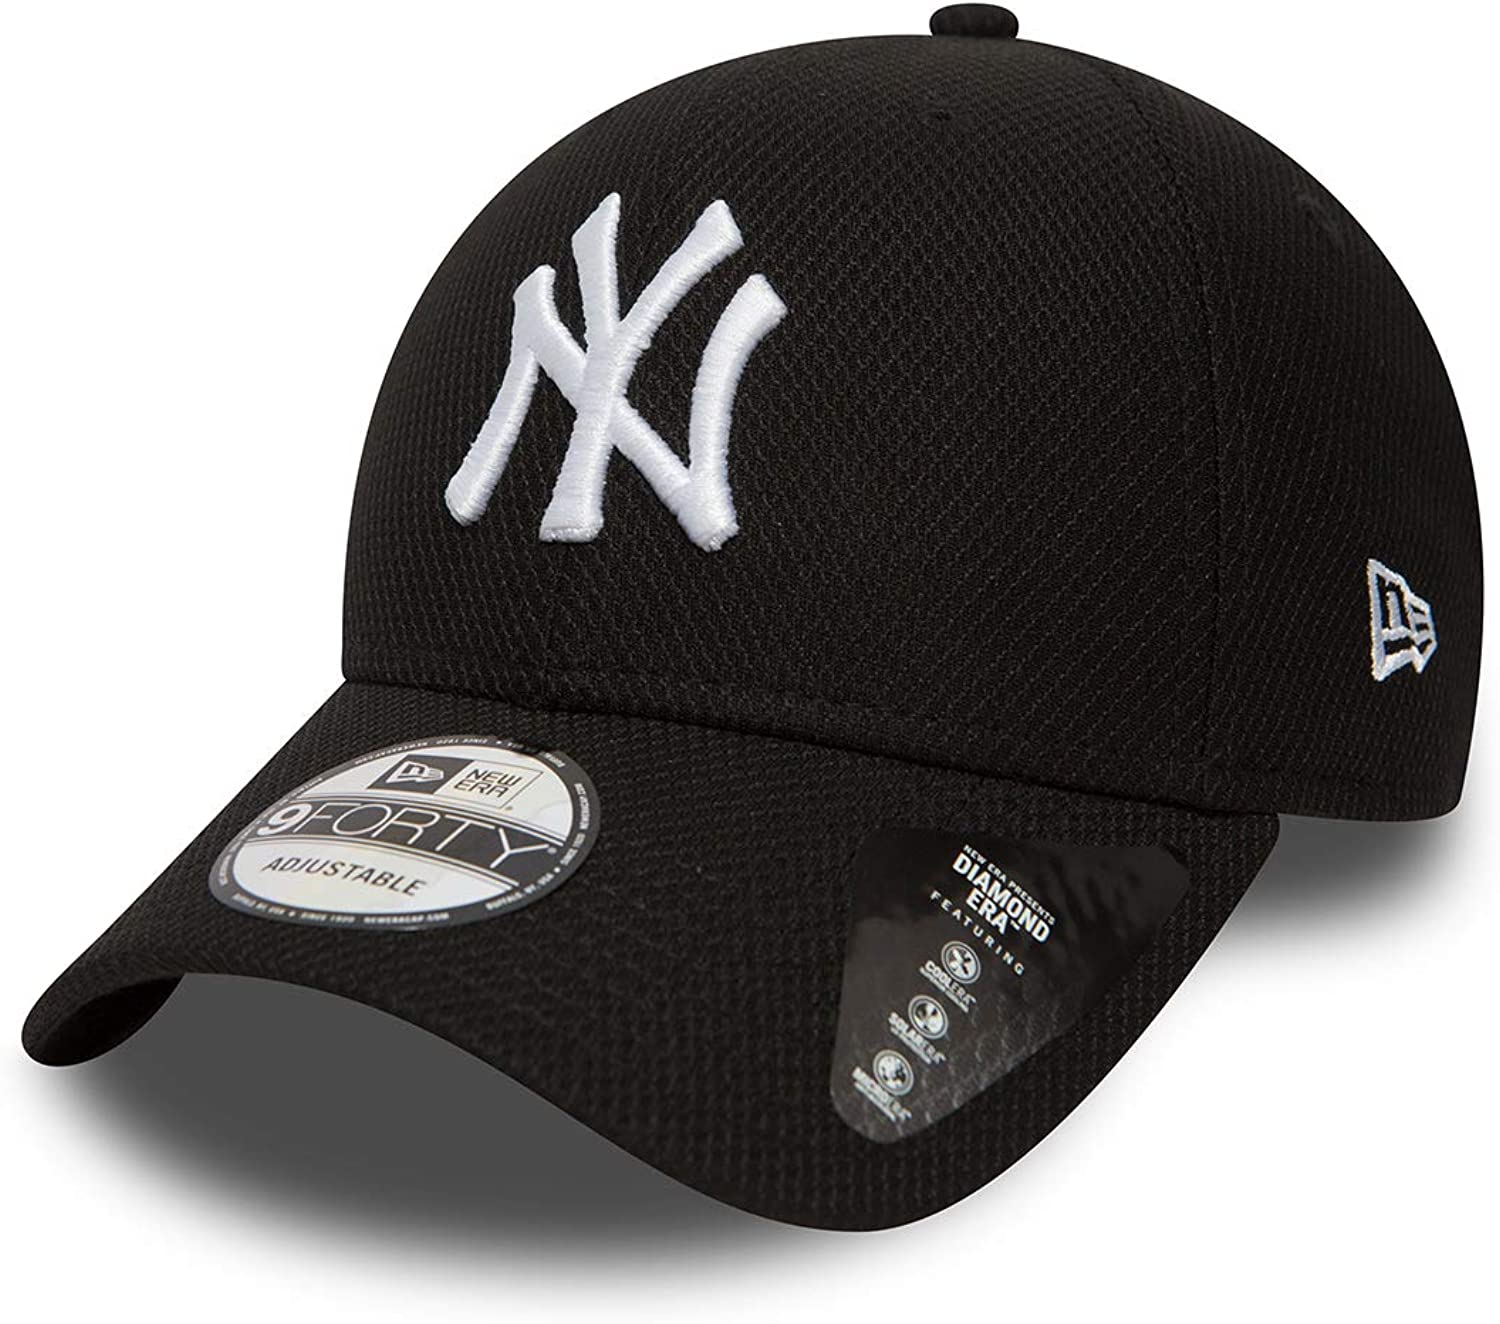 A NEW ERA Gorra 9Forty MLB York Yankees Diamond Negro/Blanco Talla ...